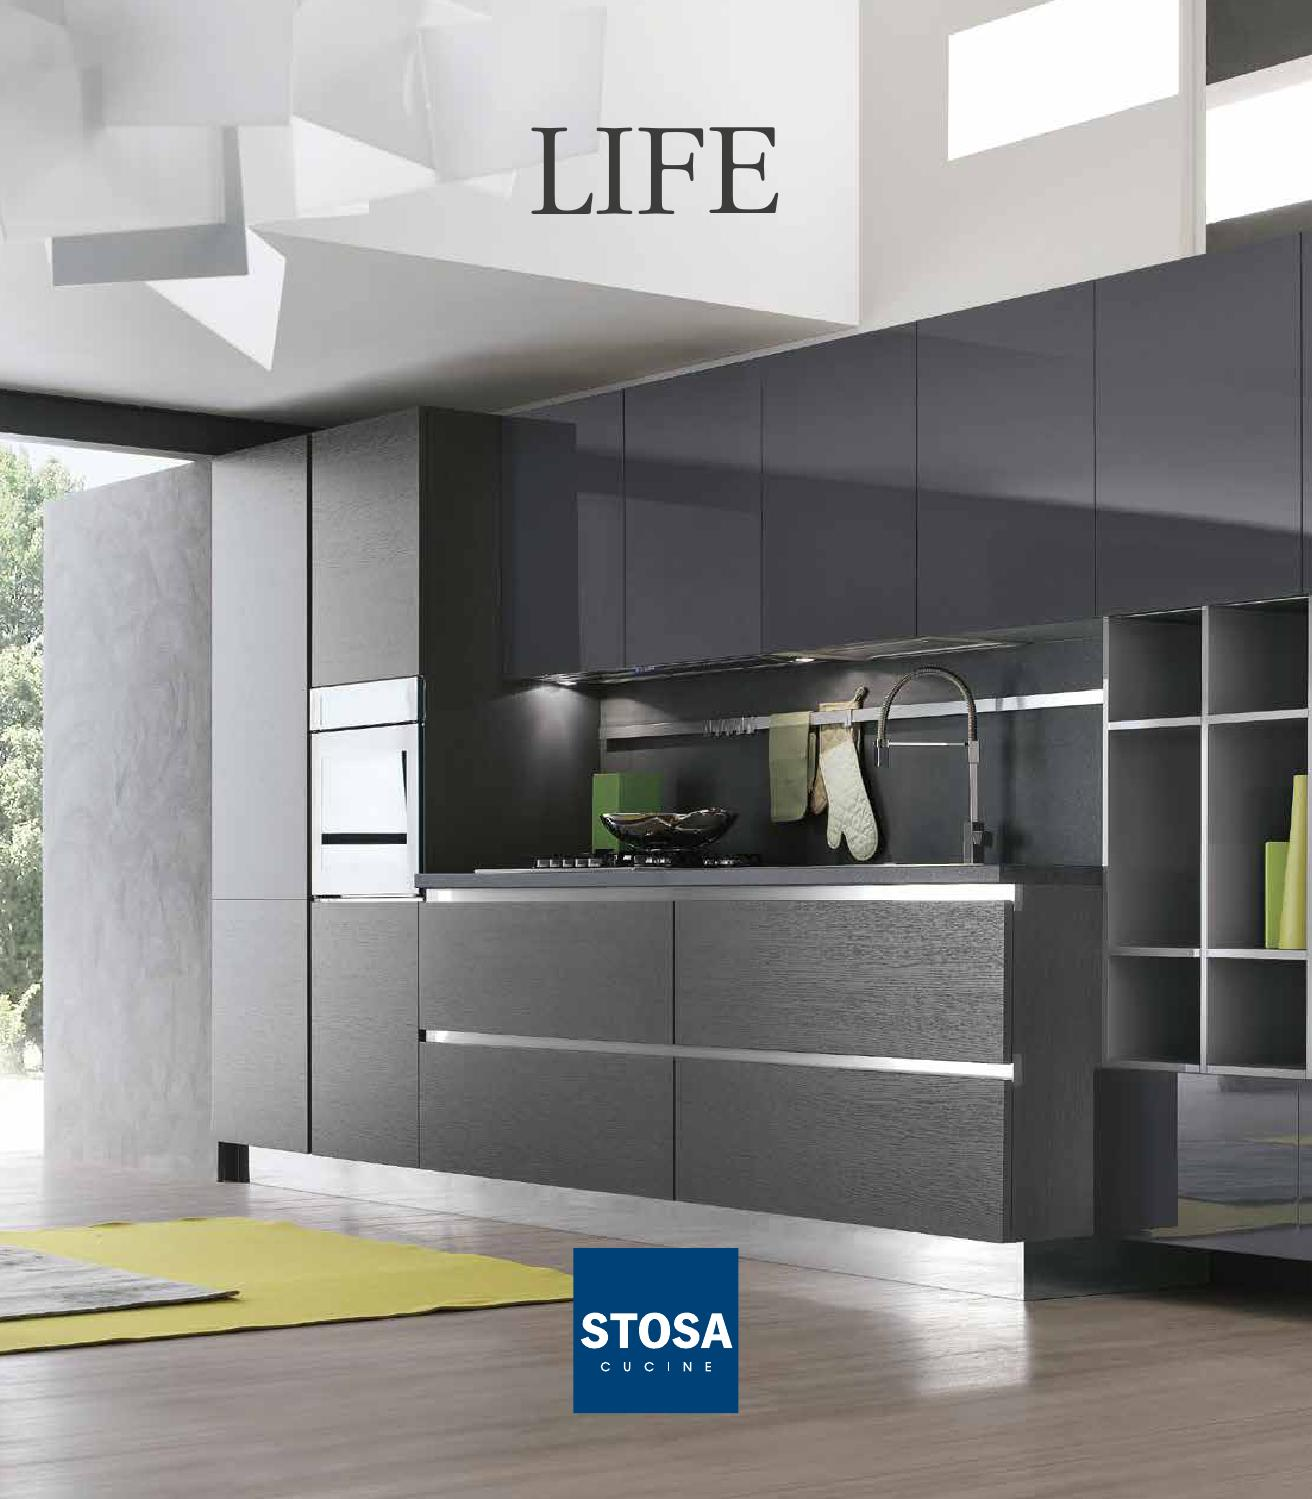 Catalogo cucine moderne stosa life by stosa cucine issuu - Cucine stosa opinioni ...